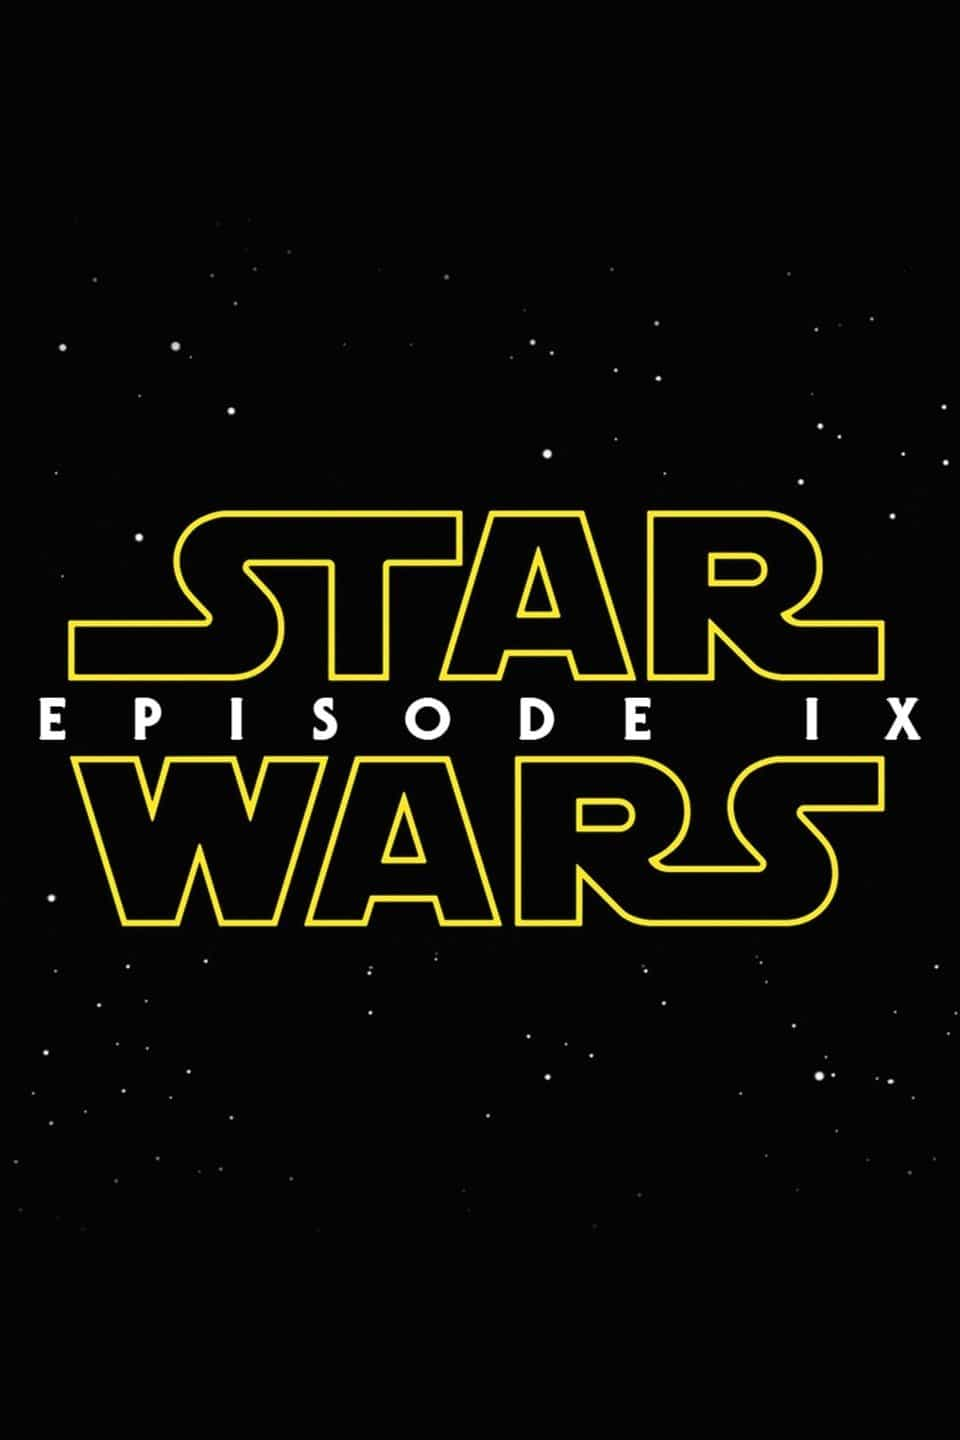 Star Wars Episode IX gets a new release day of May 24th 2019